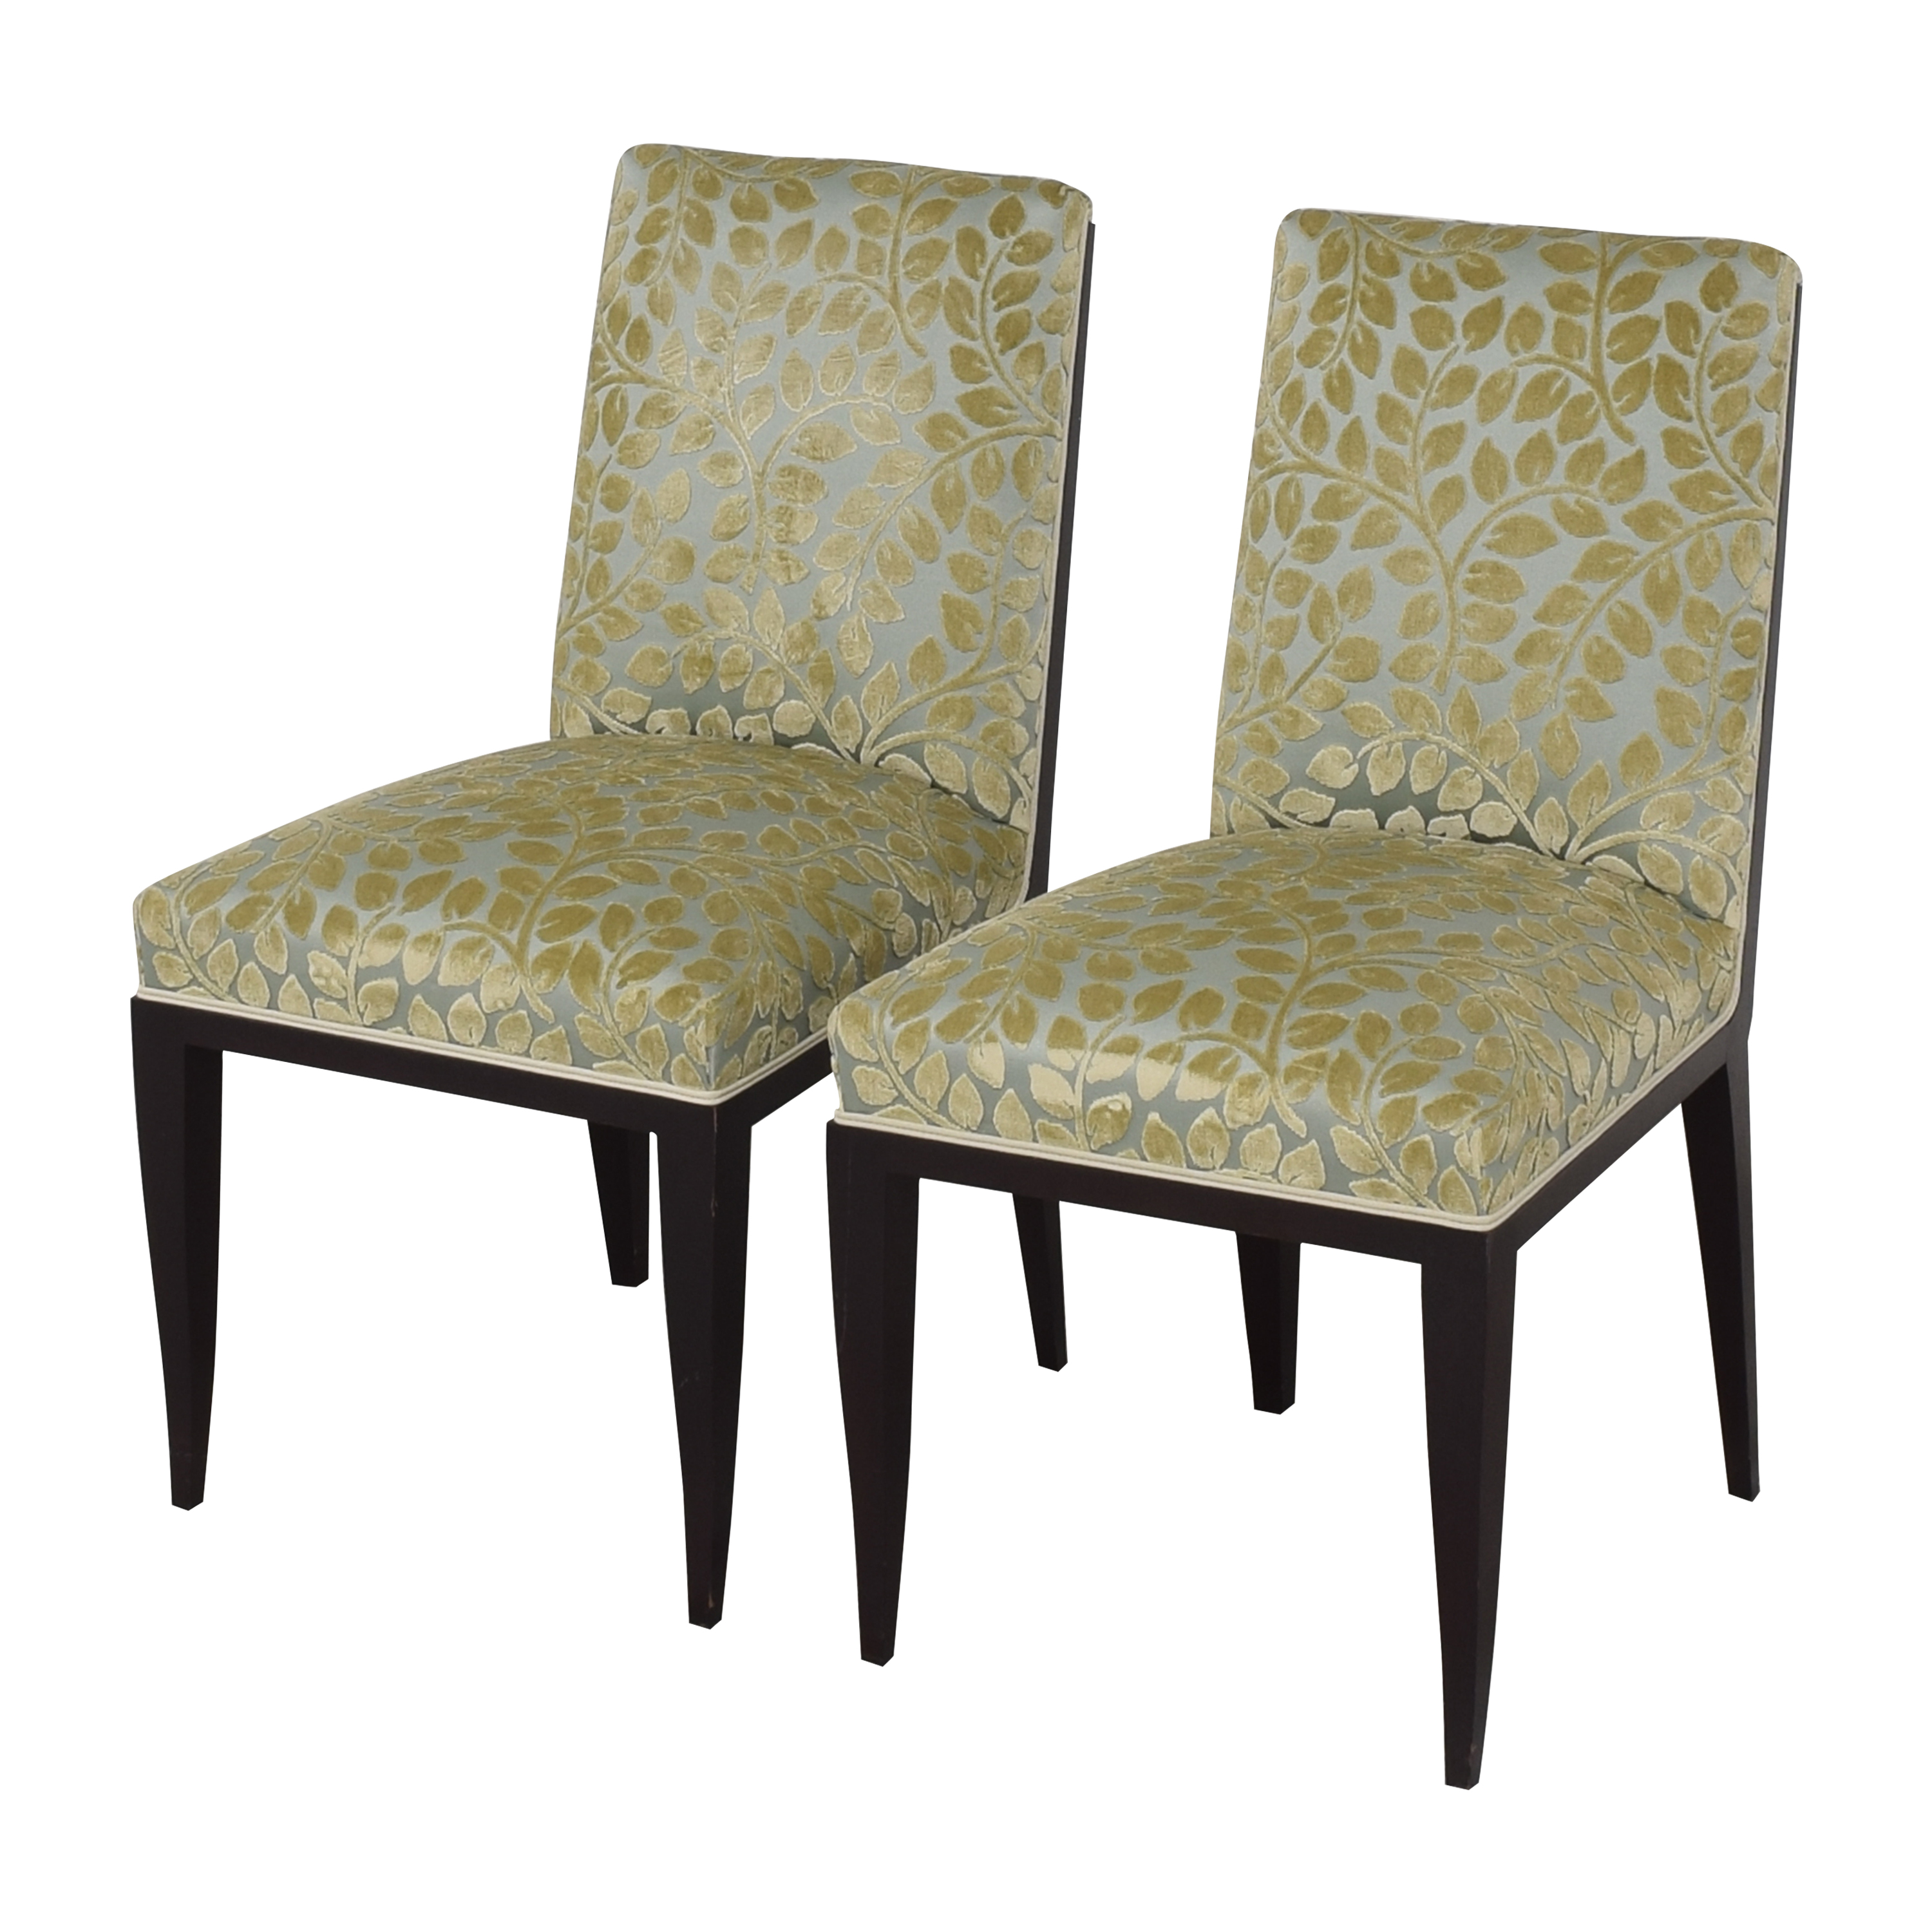 Mattaliano Flea Market #1 Dining Side Chairs / Dining Chairs